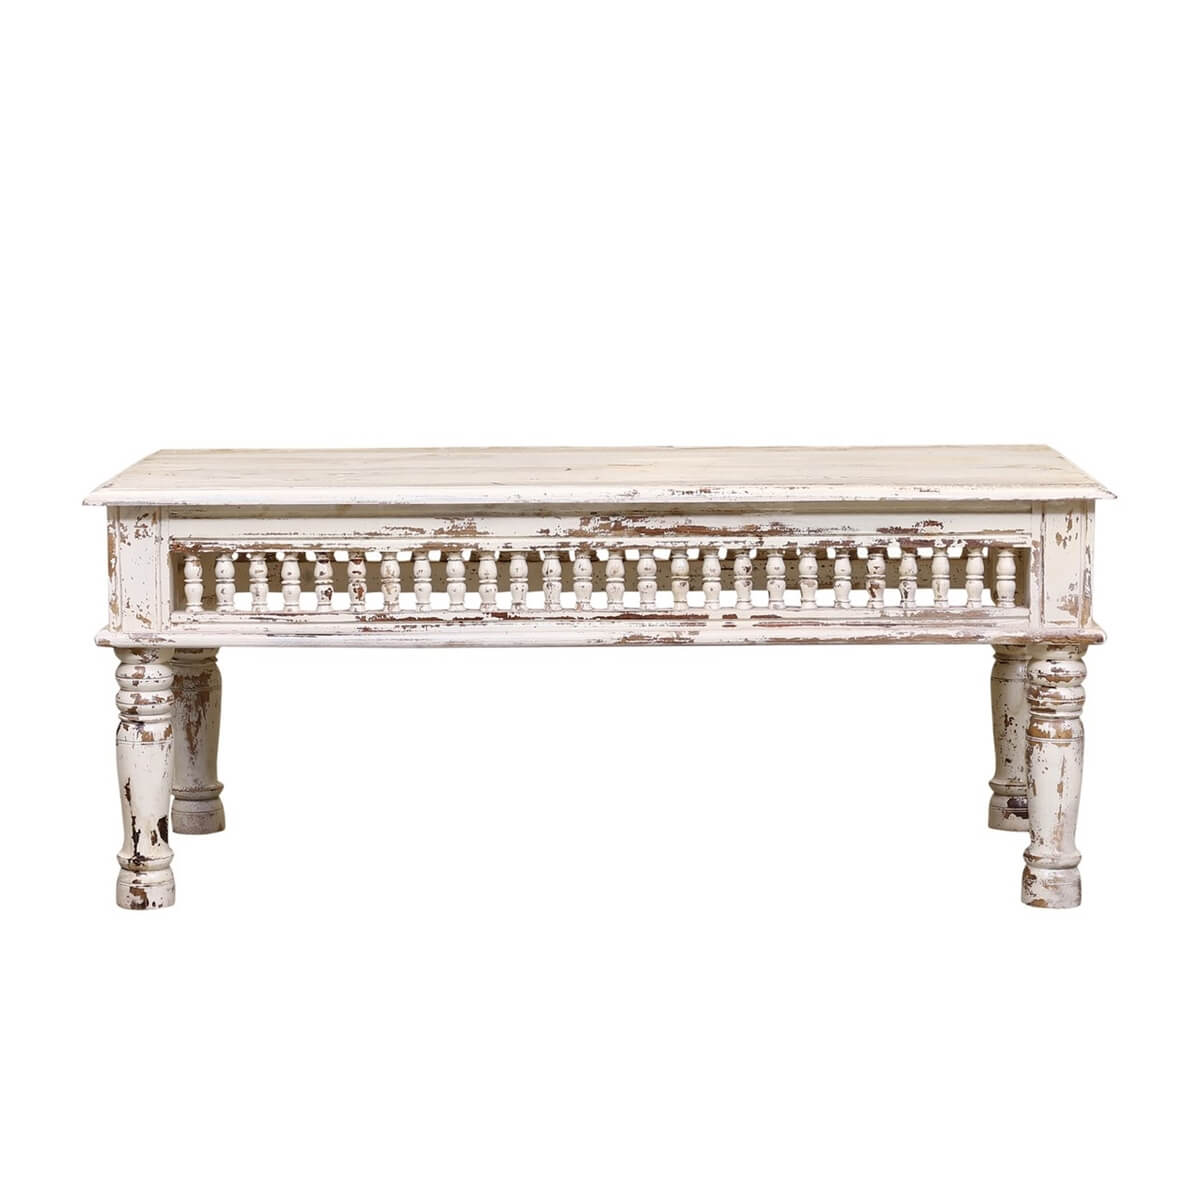 Bowlus White Distressed Reclaimed Wood Railing Rustic Coffee Table